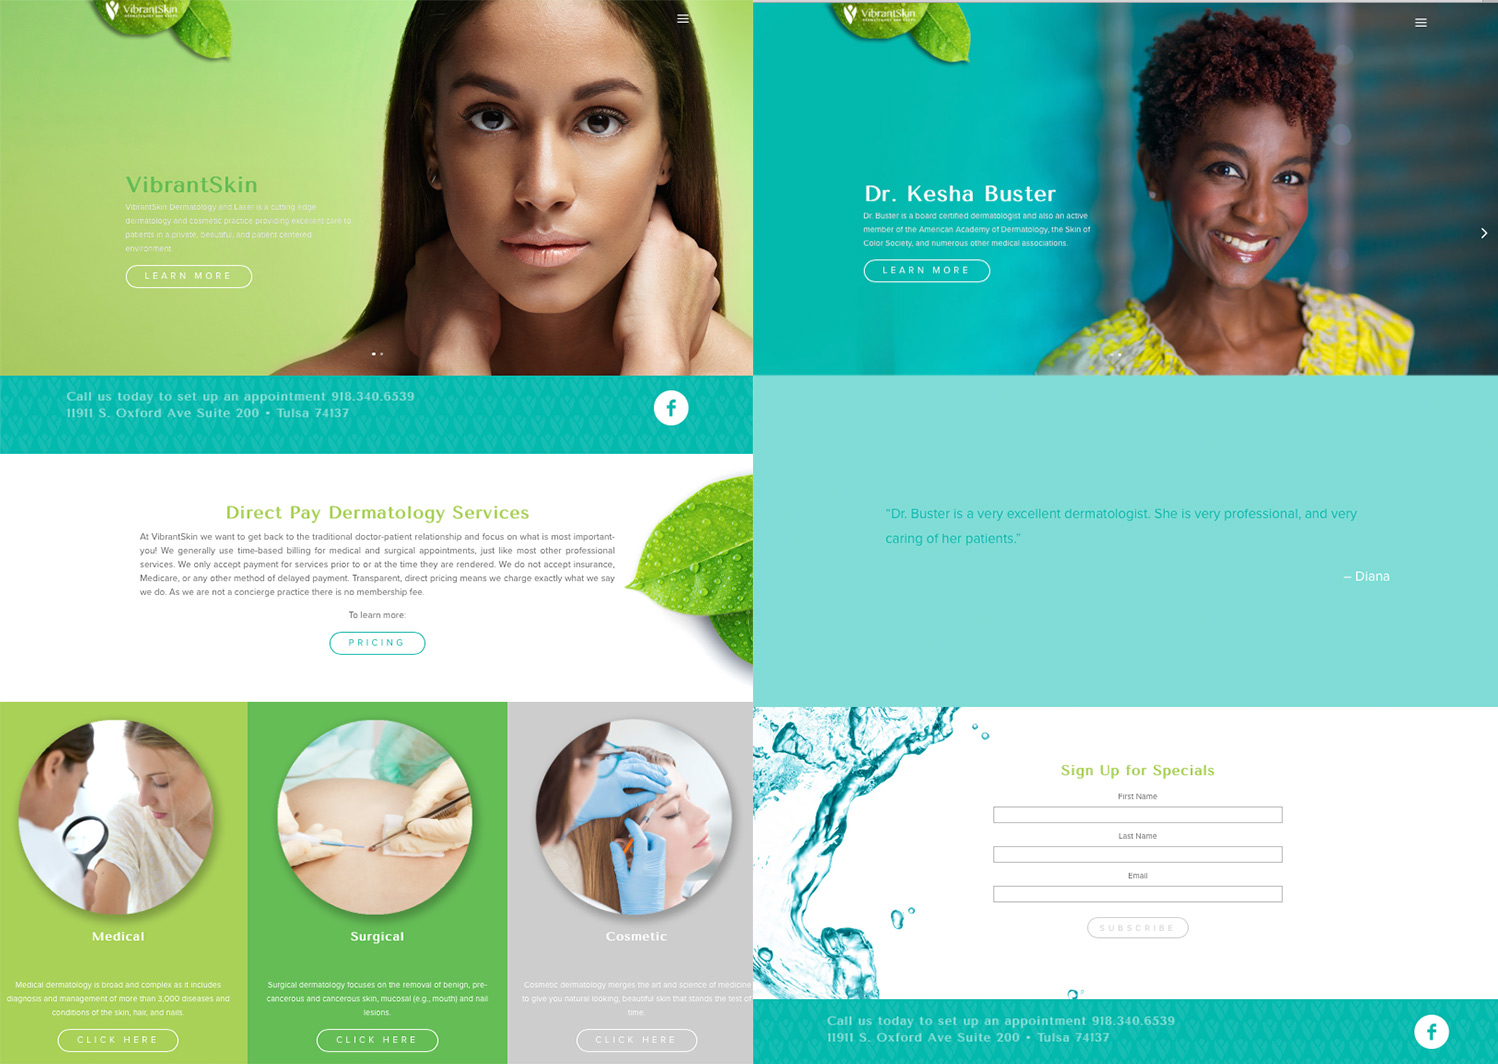 Vibrant Skin Web Design & Development